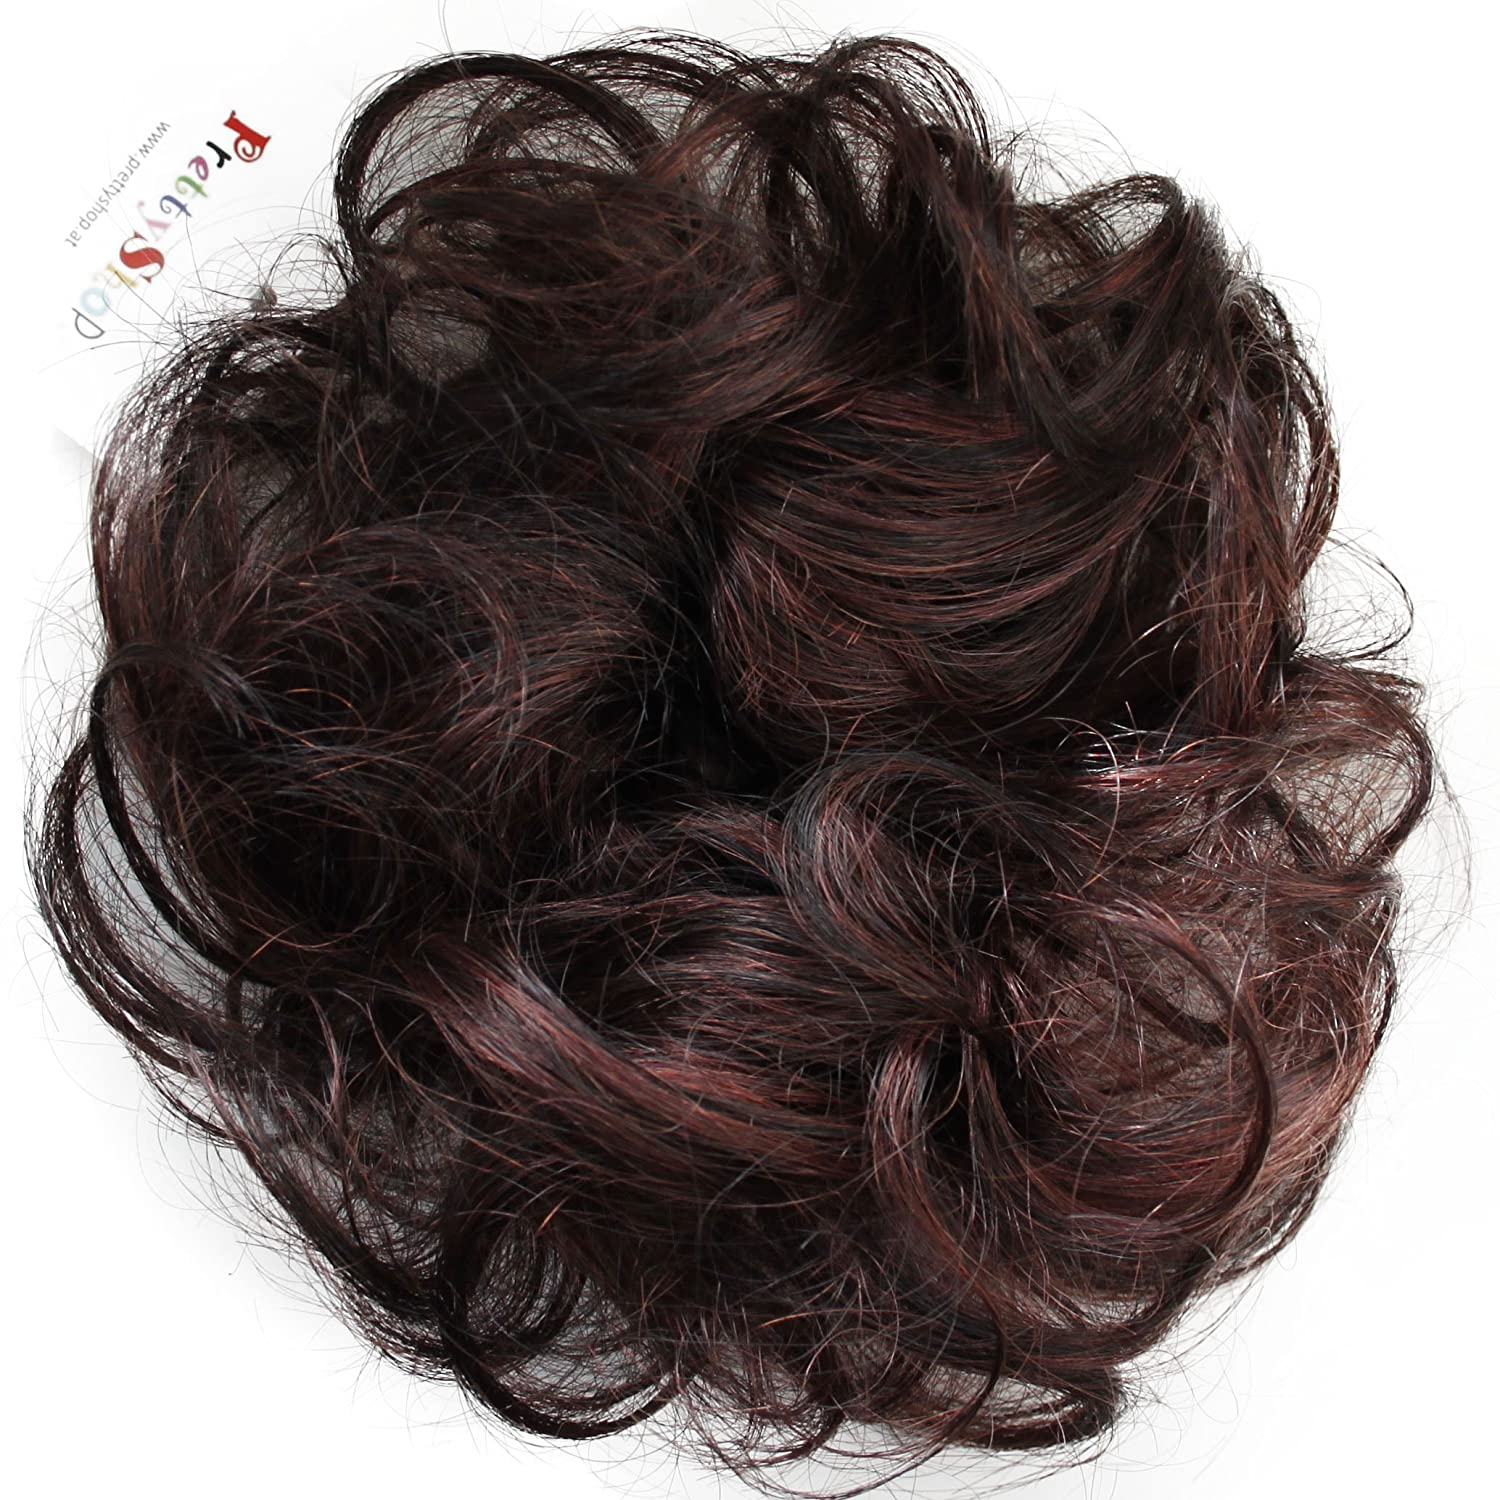 PRETTYSHOP 100% Human Hair Quality inspection Up Scrunchy Bla Scrunchie Extensions New item